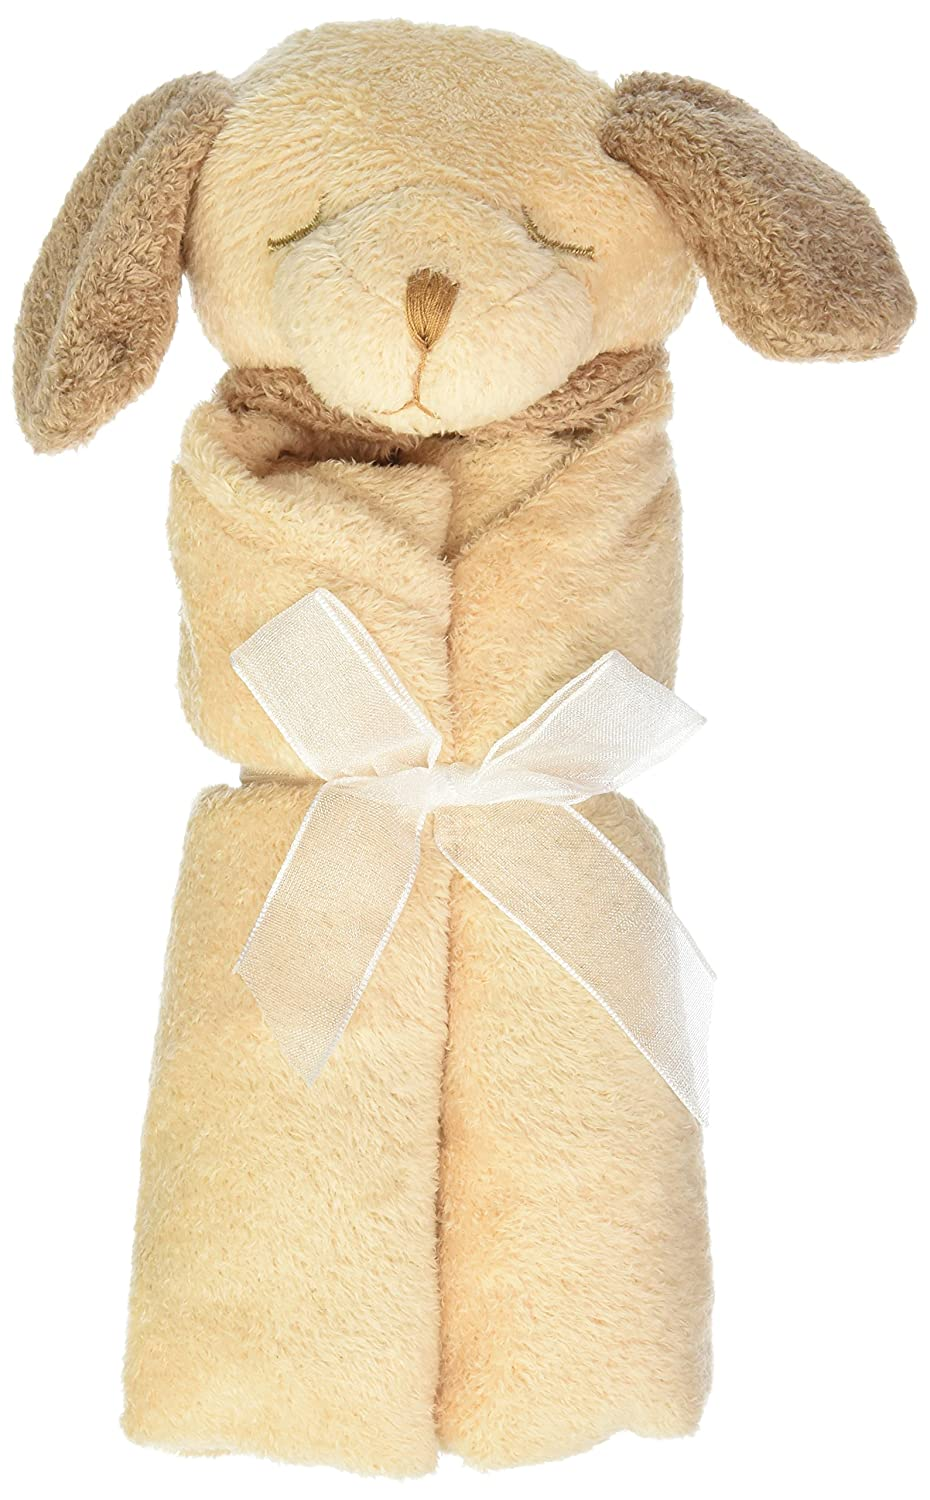 Angel Dear Blankie, Brown Puppy 1111